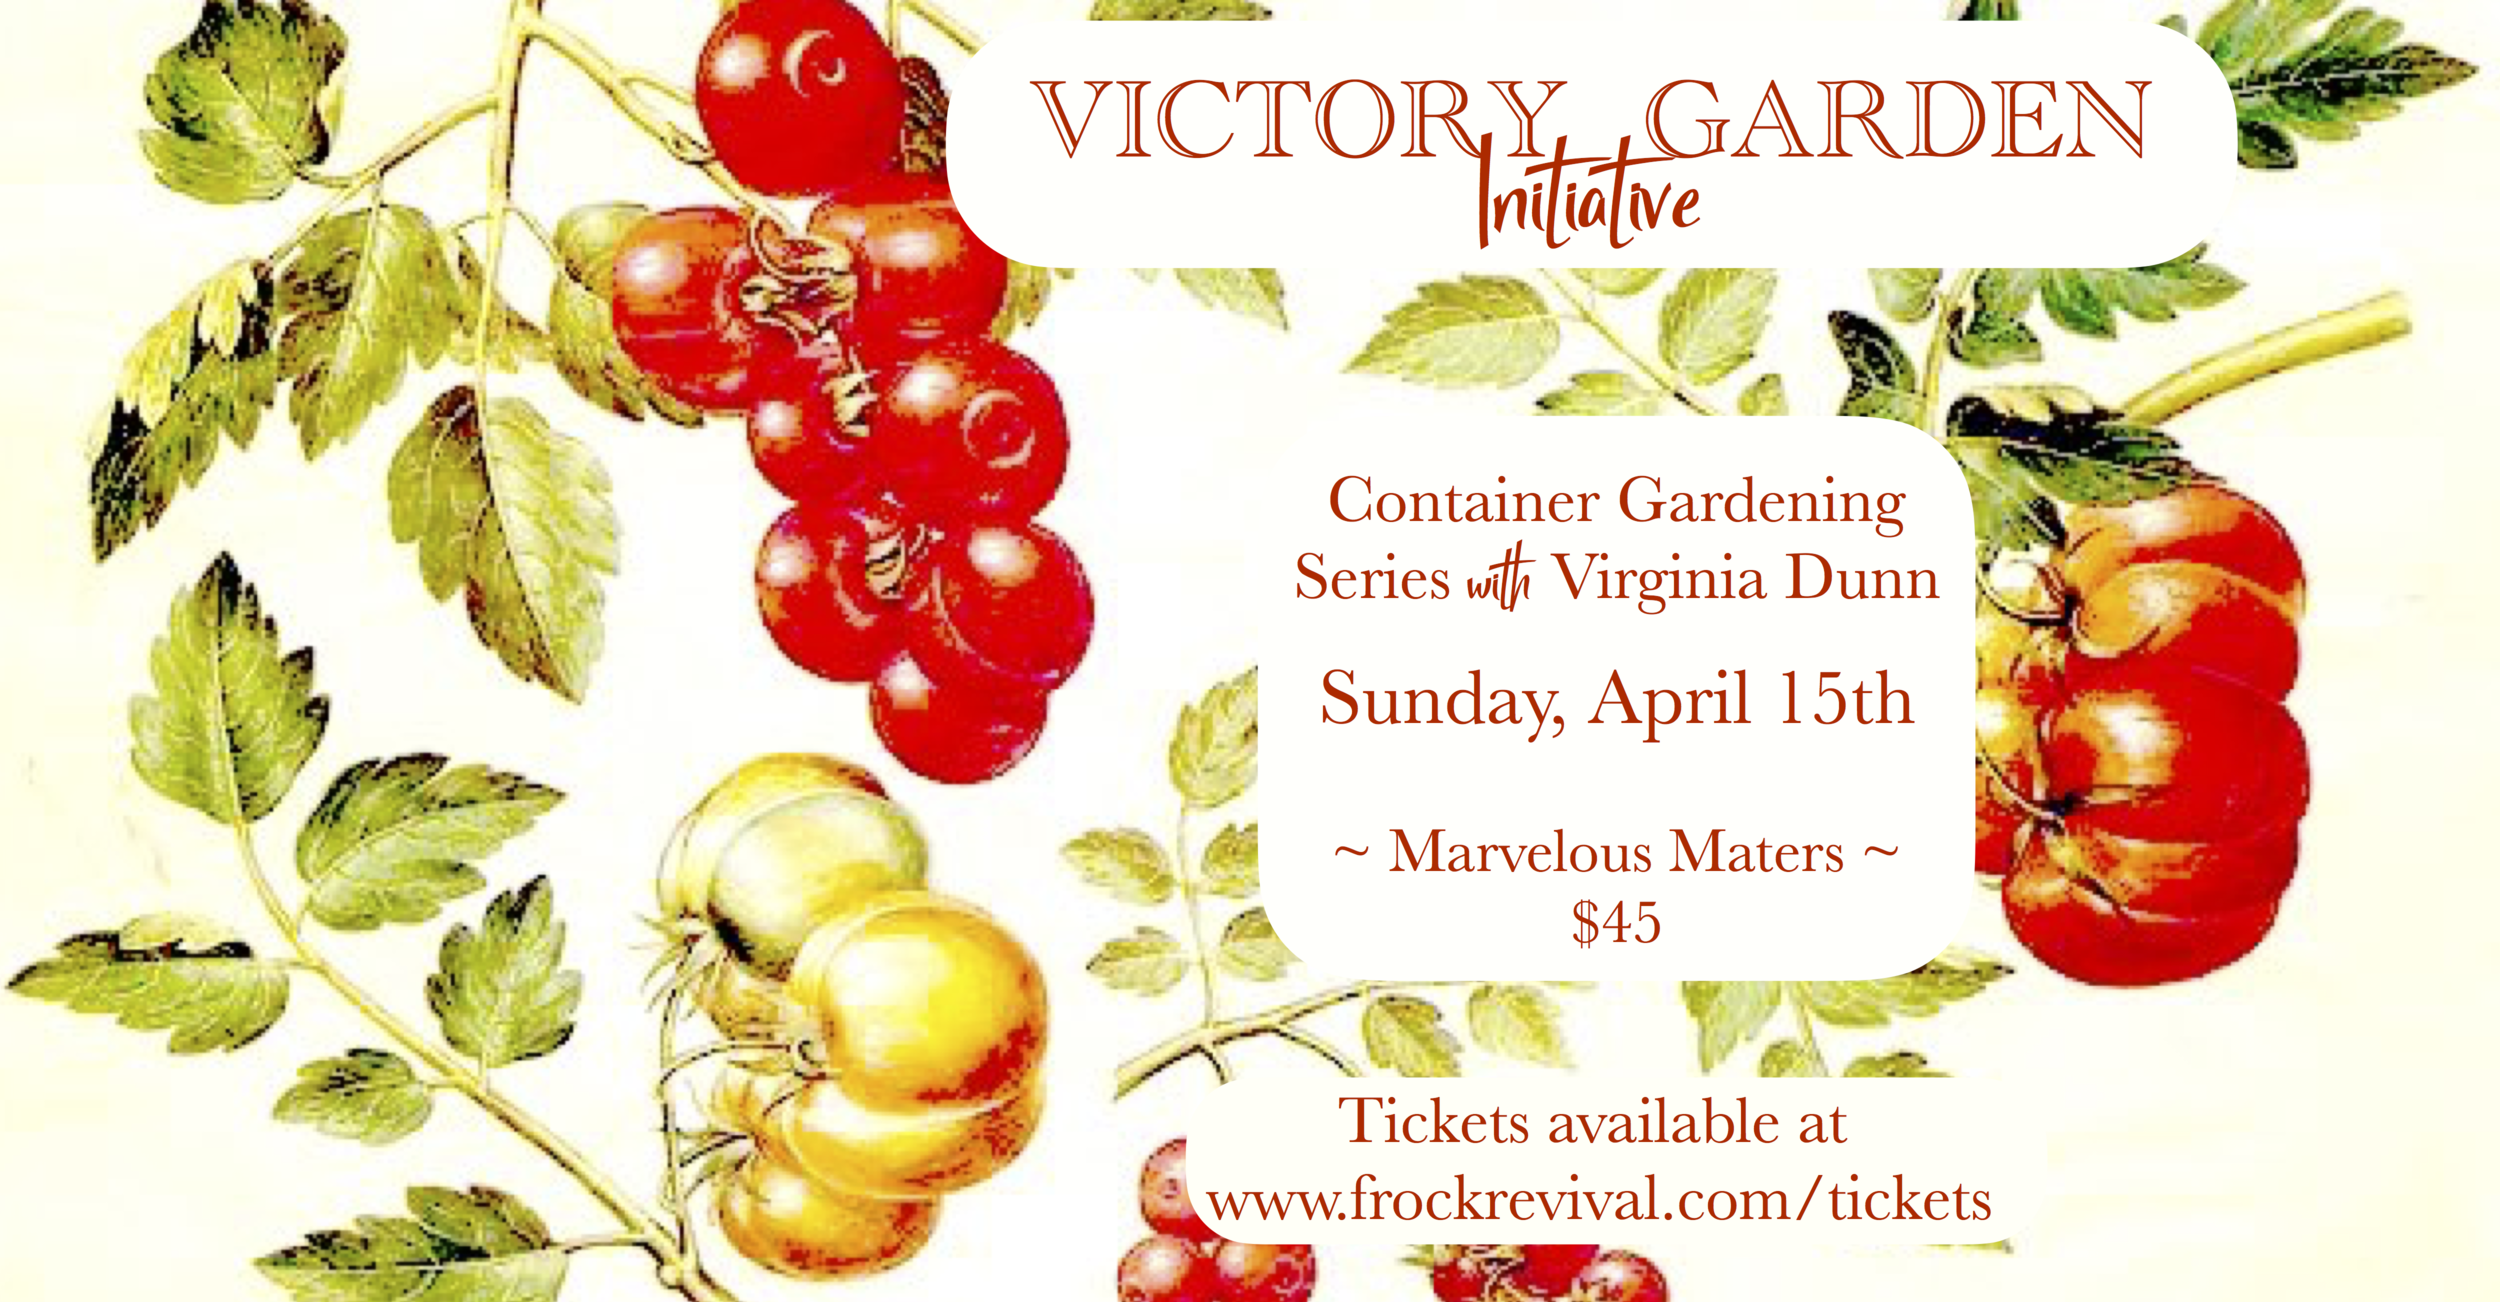 FROCK Shop Victory Garden Initiative Container Gardening Series with Virginia Dunn - Marvelous Maters